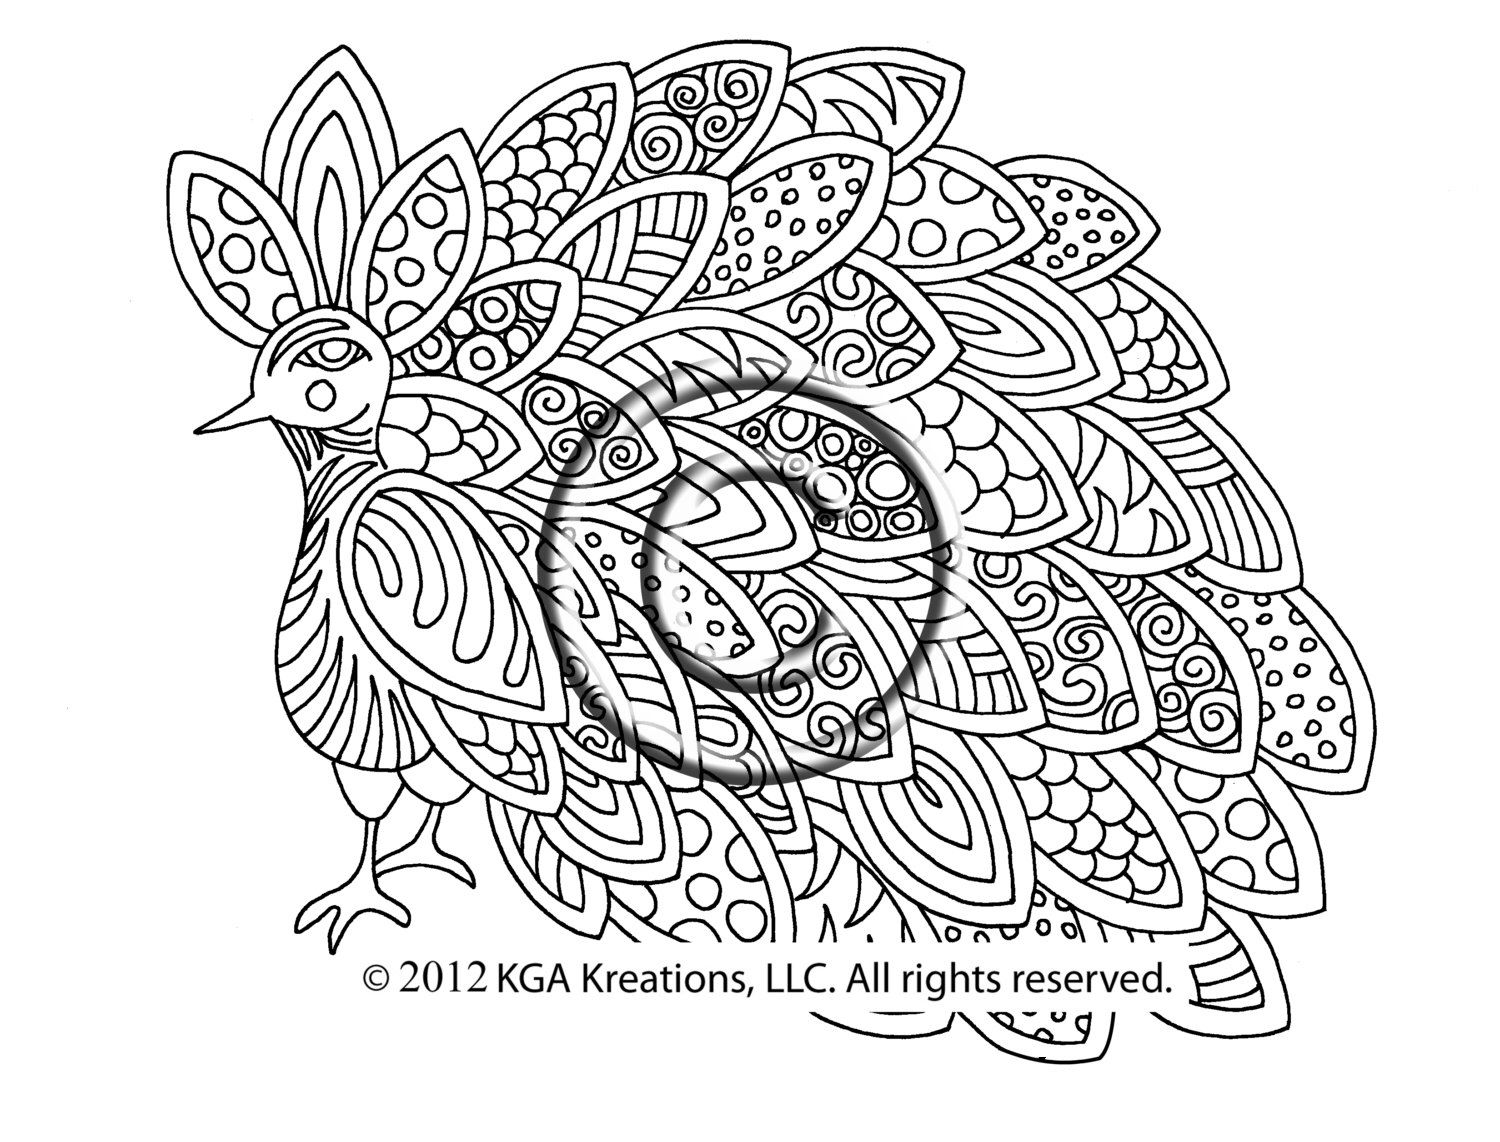 Pin by Morgan Powis on Adult Coloring Pages | Pinterest | Adult ...